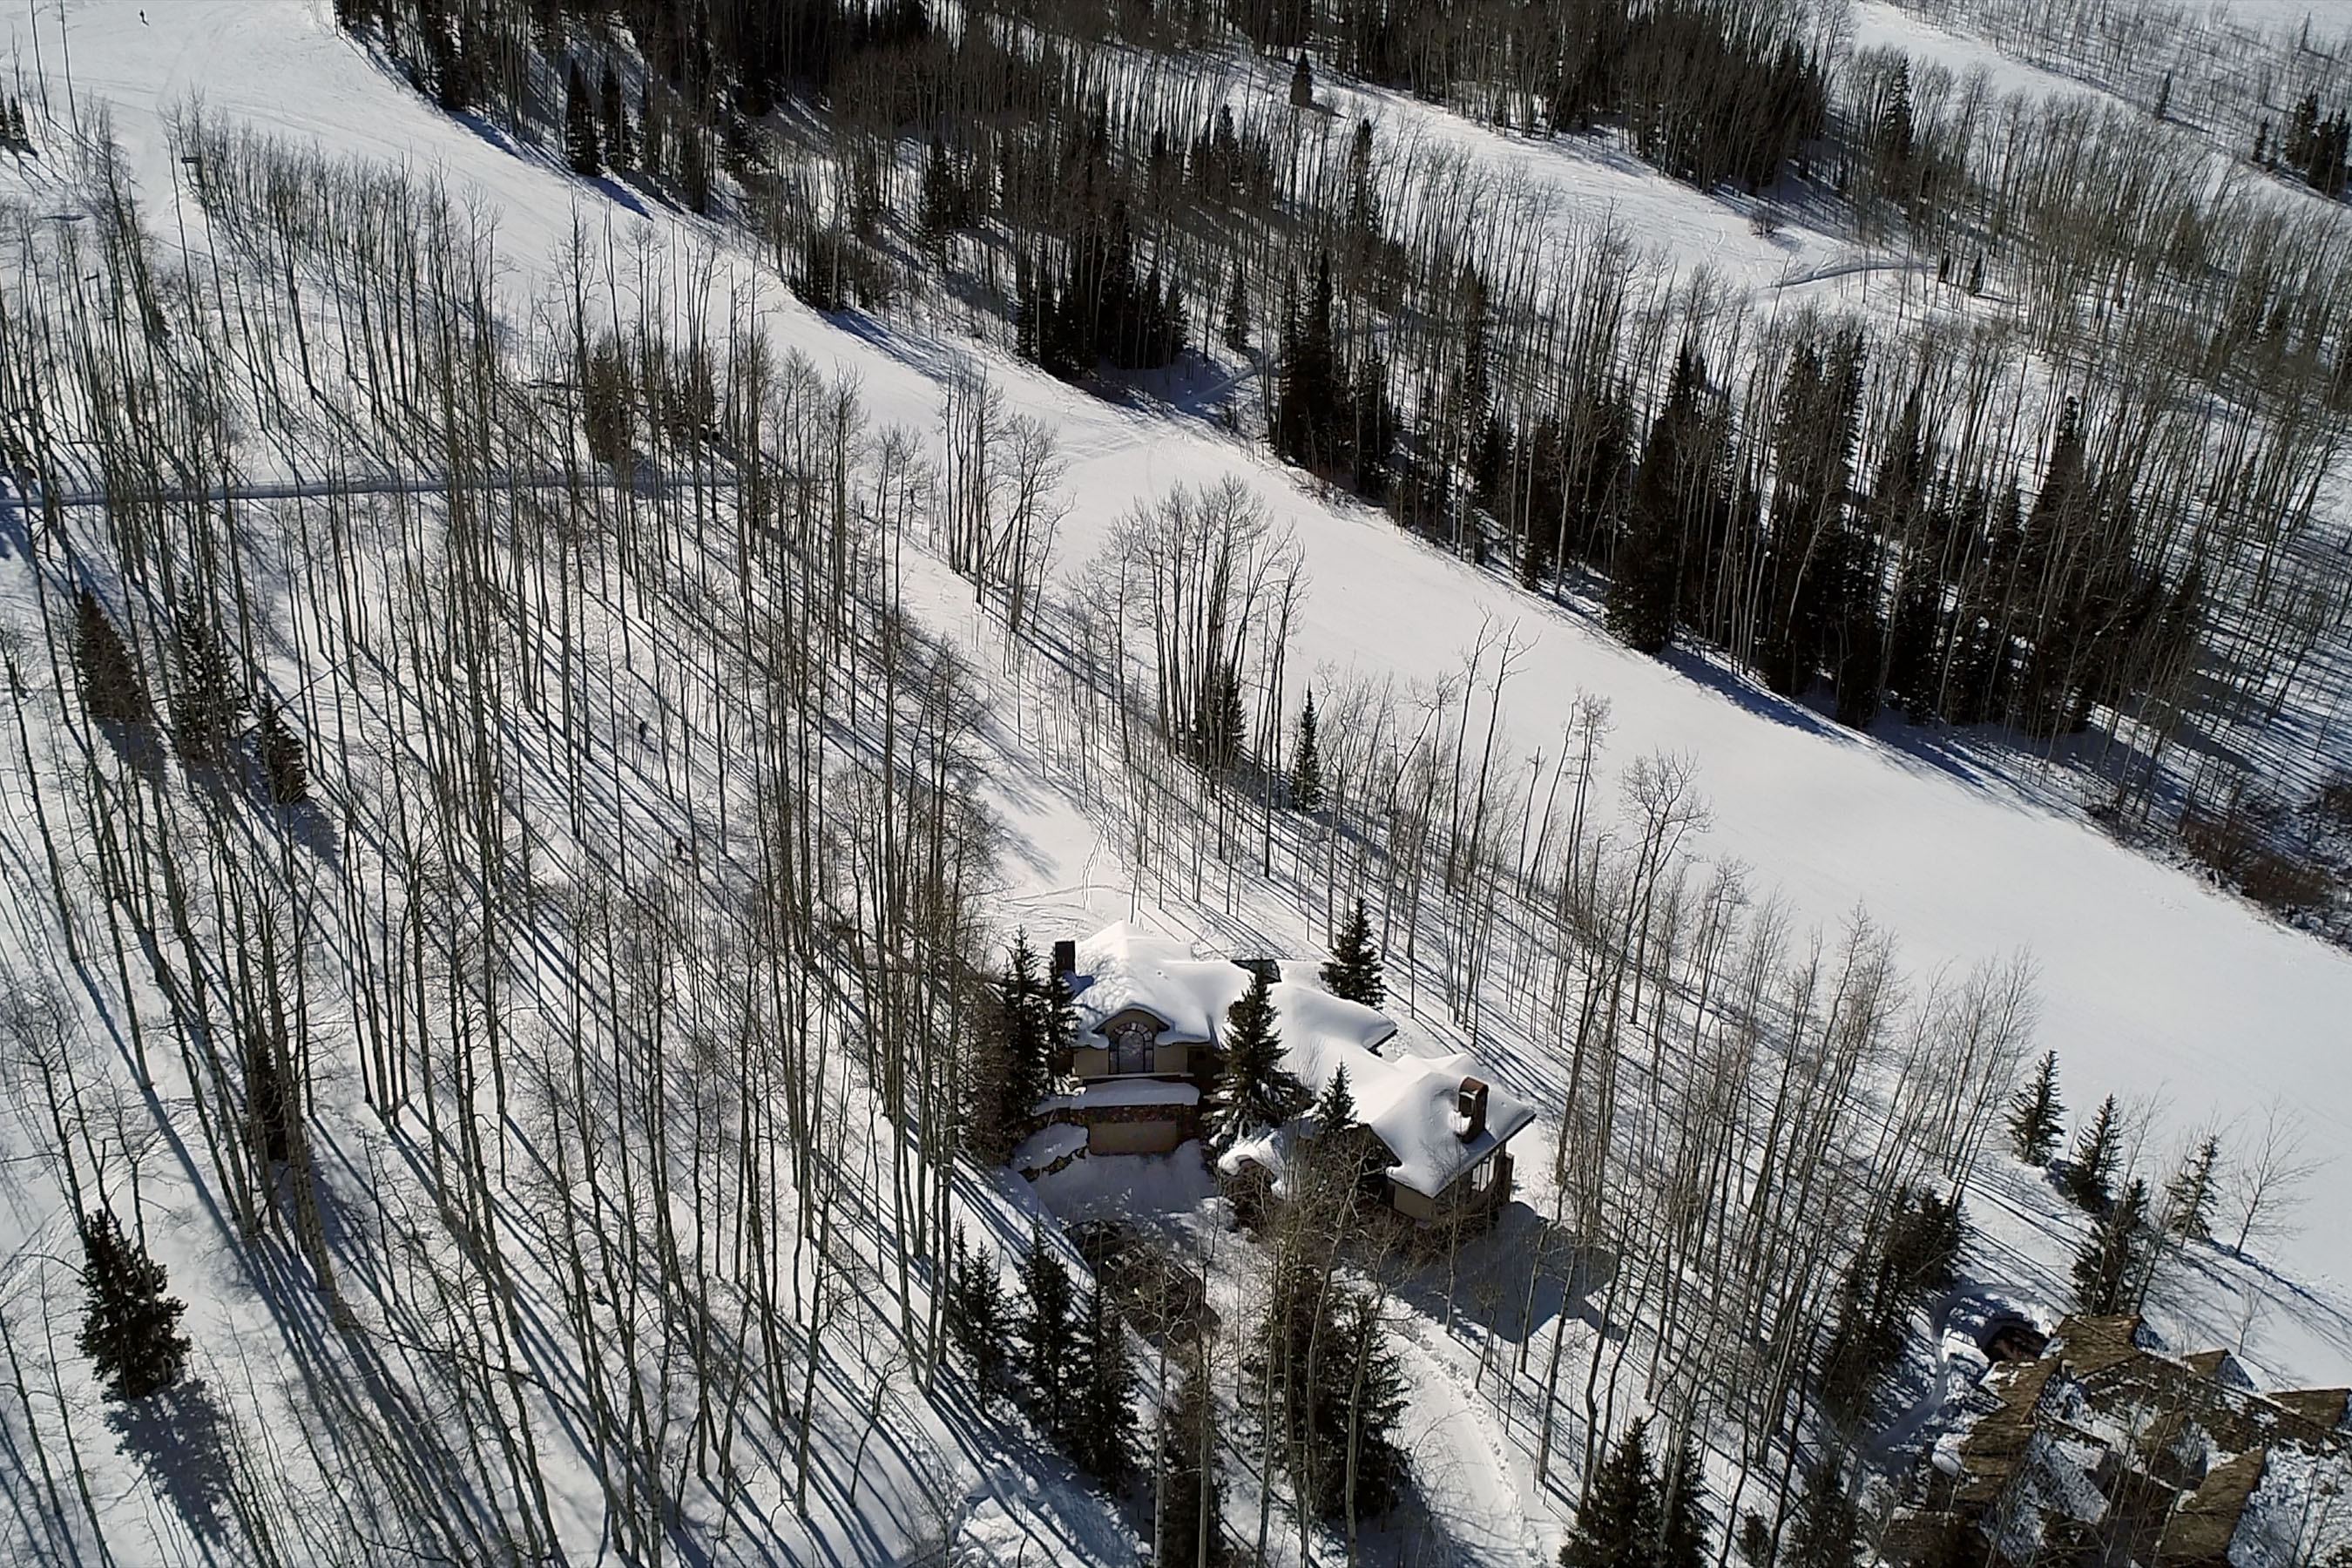 776 Divide Drive Snowmass Village Photo 8